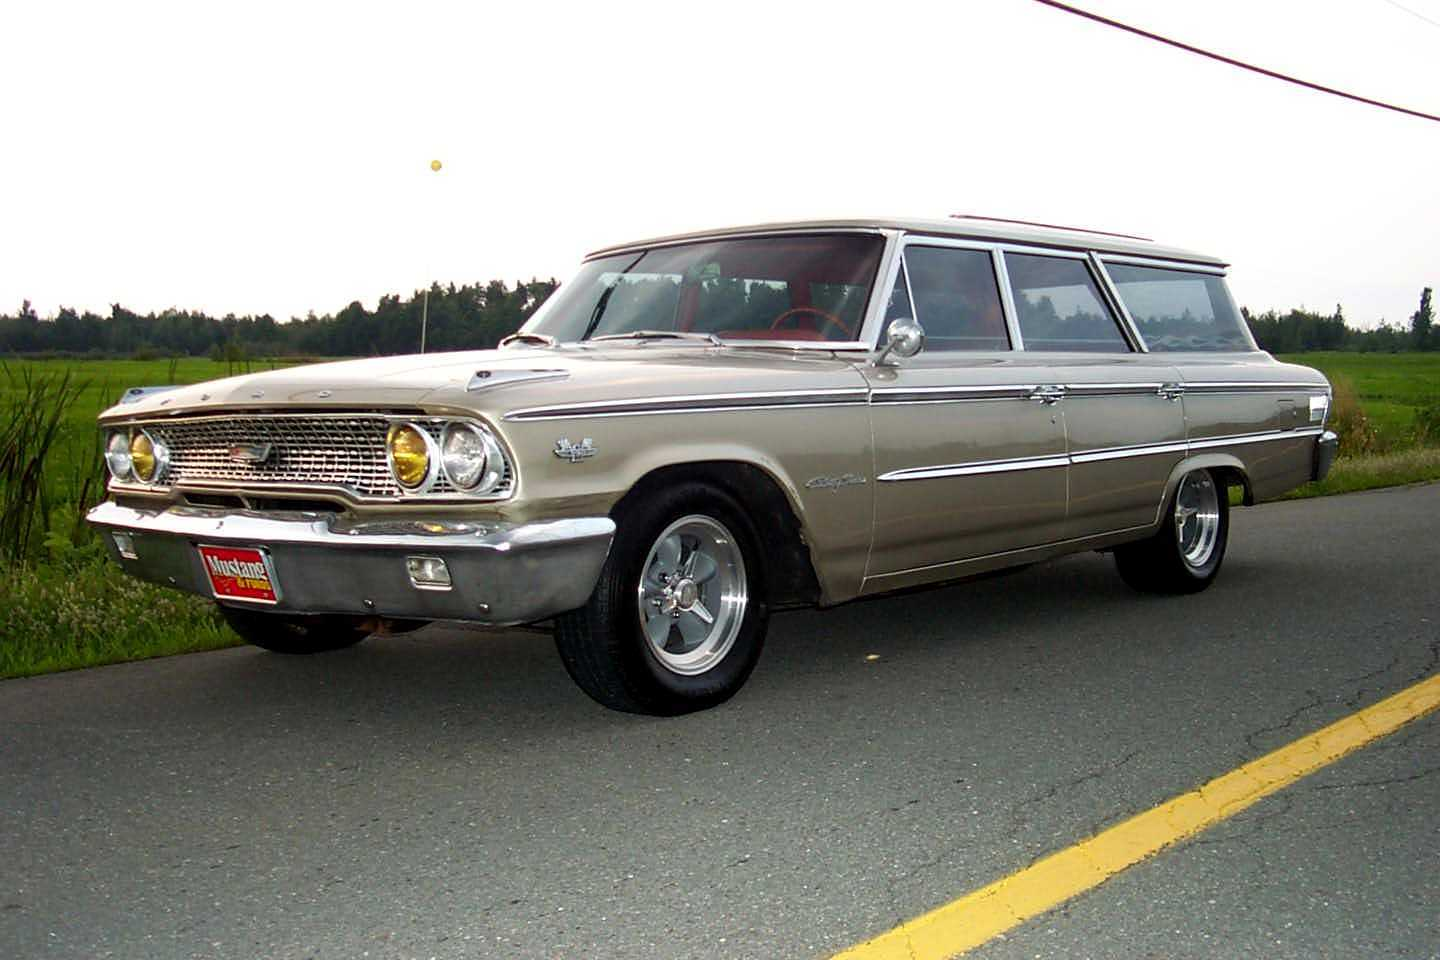 51 best galaxie images on pinterest ford galaxie galaxies and vintage cars